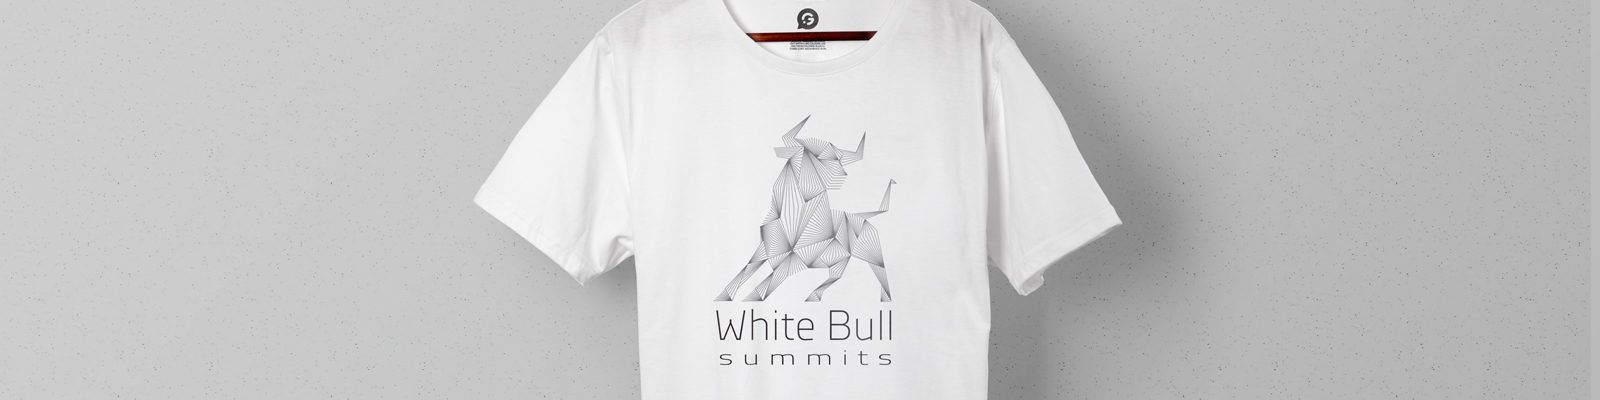 Printed Event Merchandise For White Bull Tech Summit - Header Image